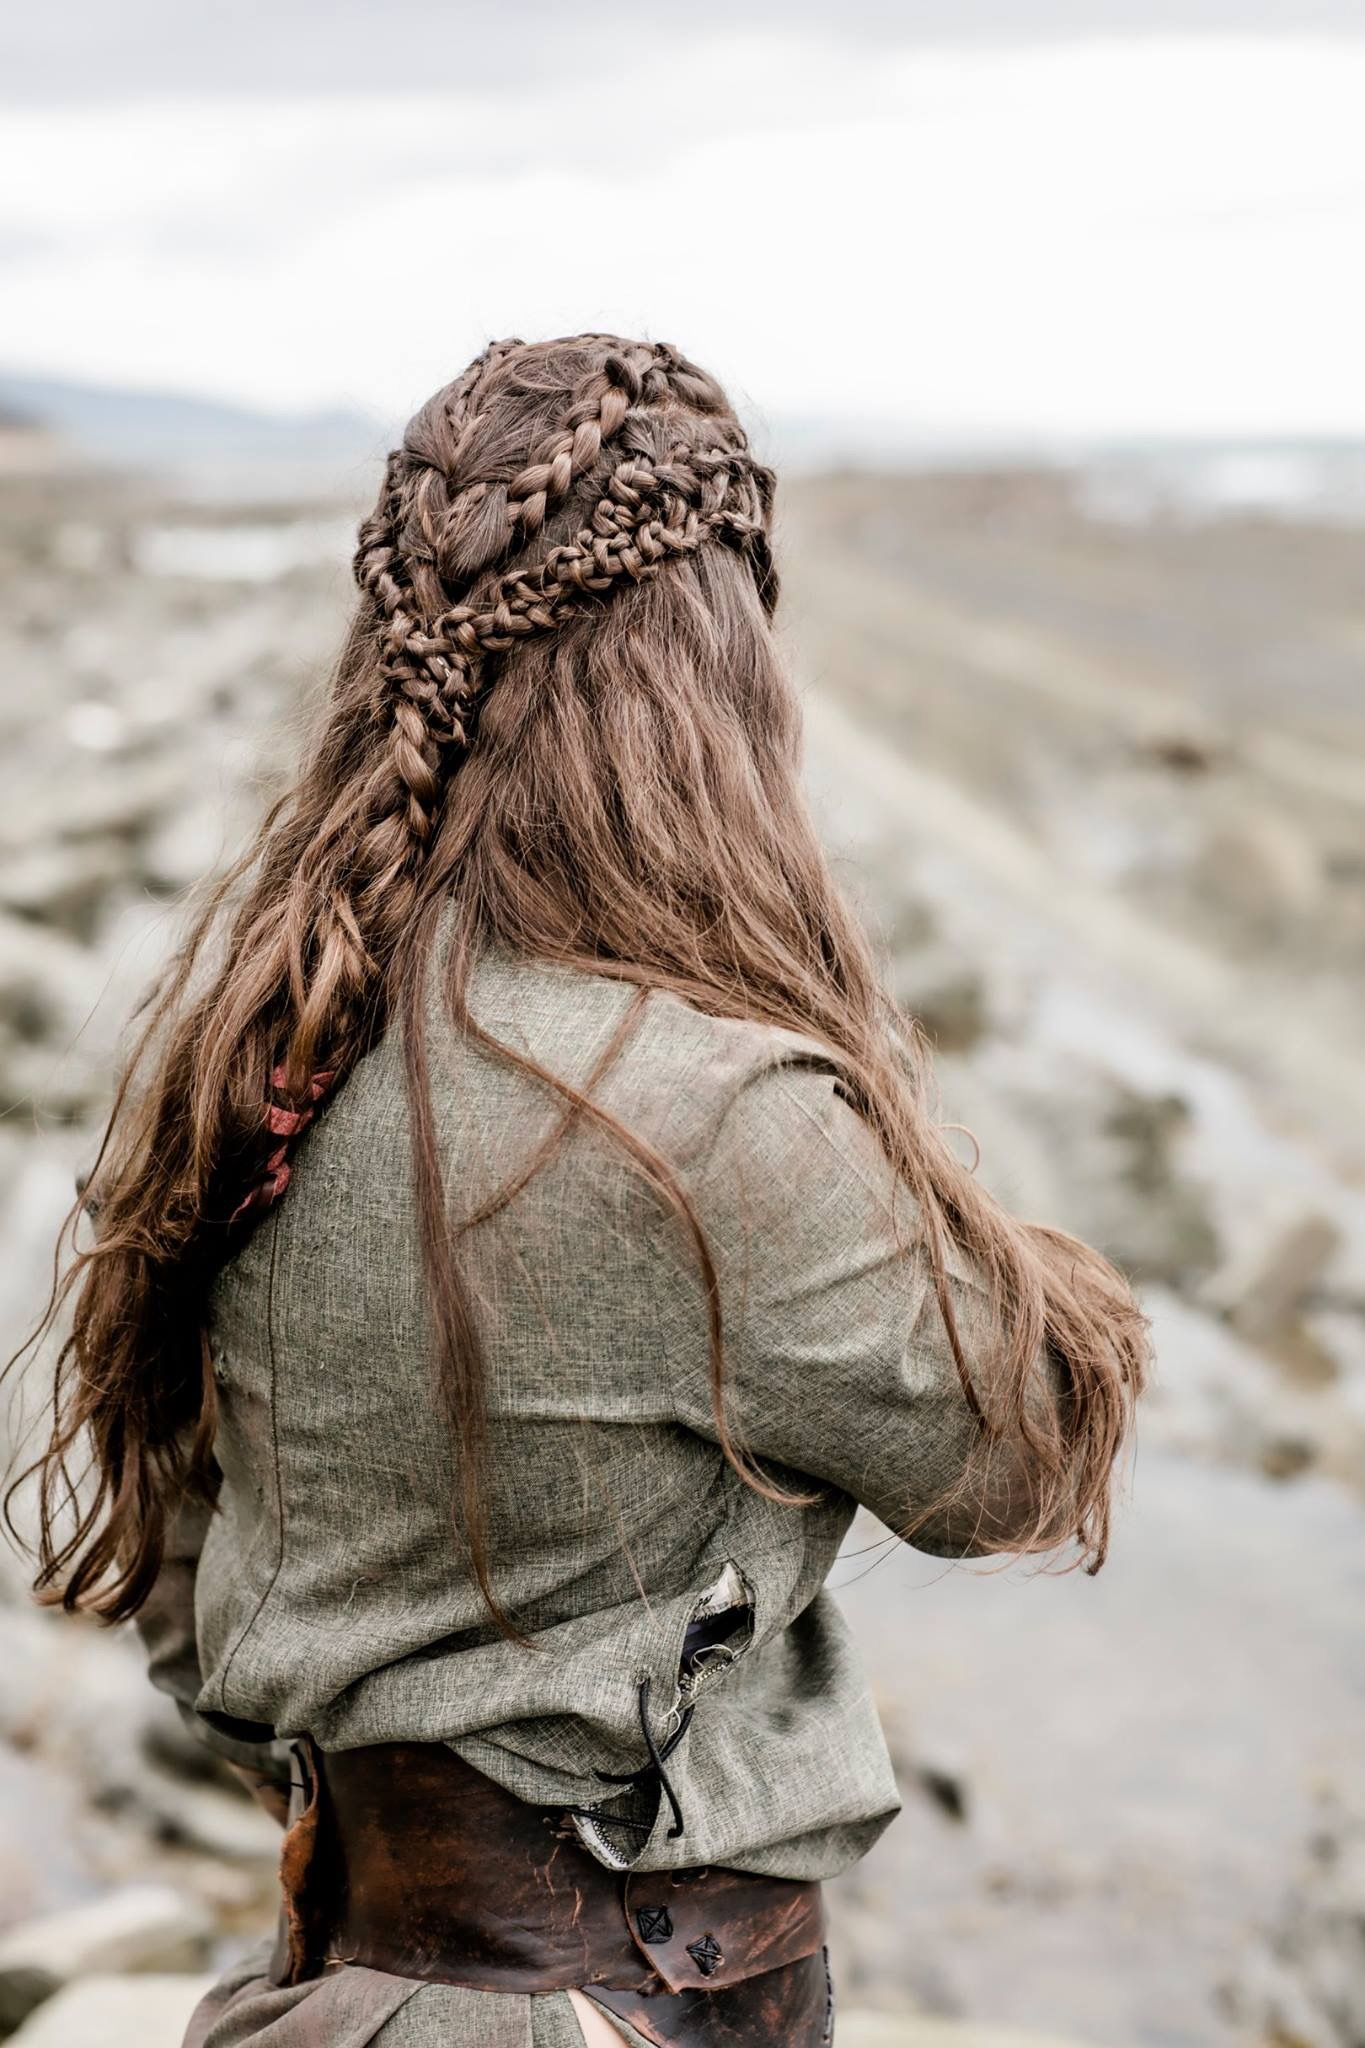 Coiffure Homme Viking Might Be A Renaissance Braid Or Viking Either Way Loving